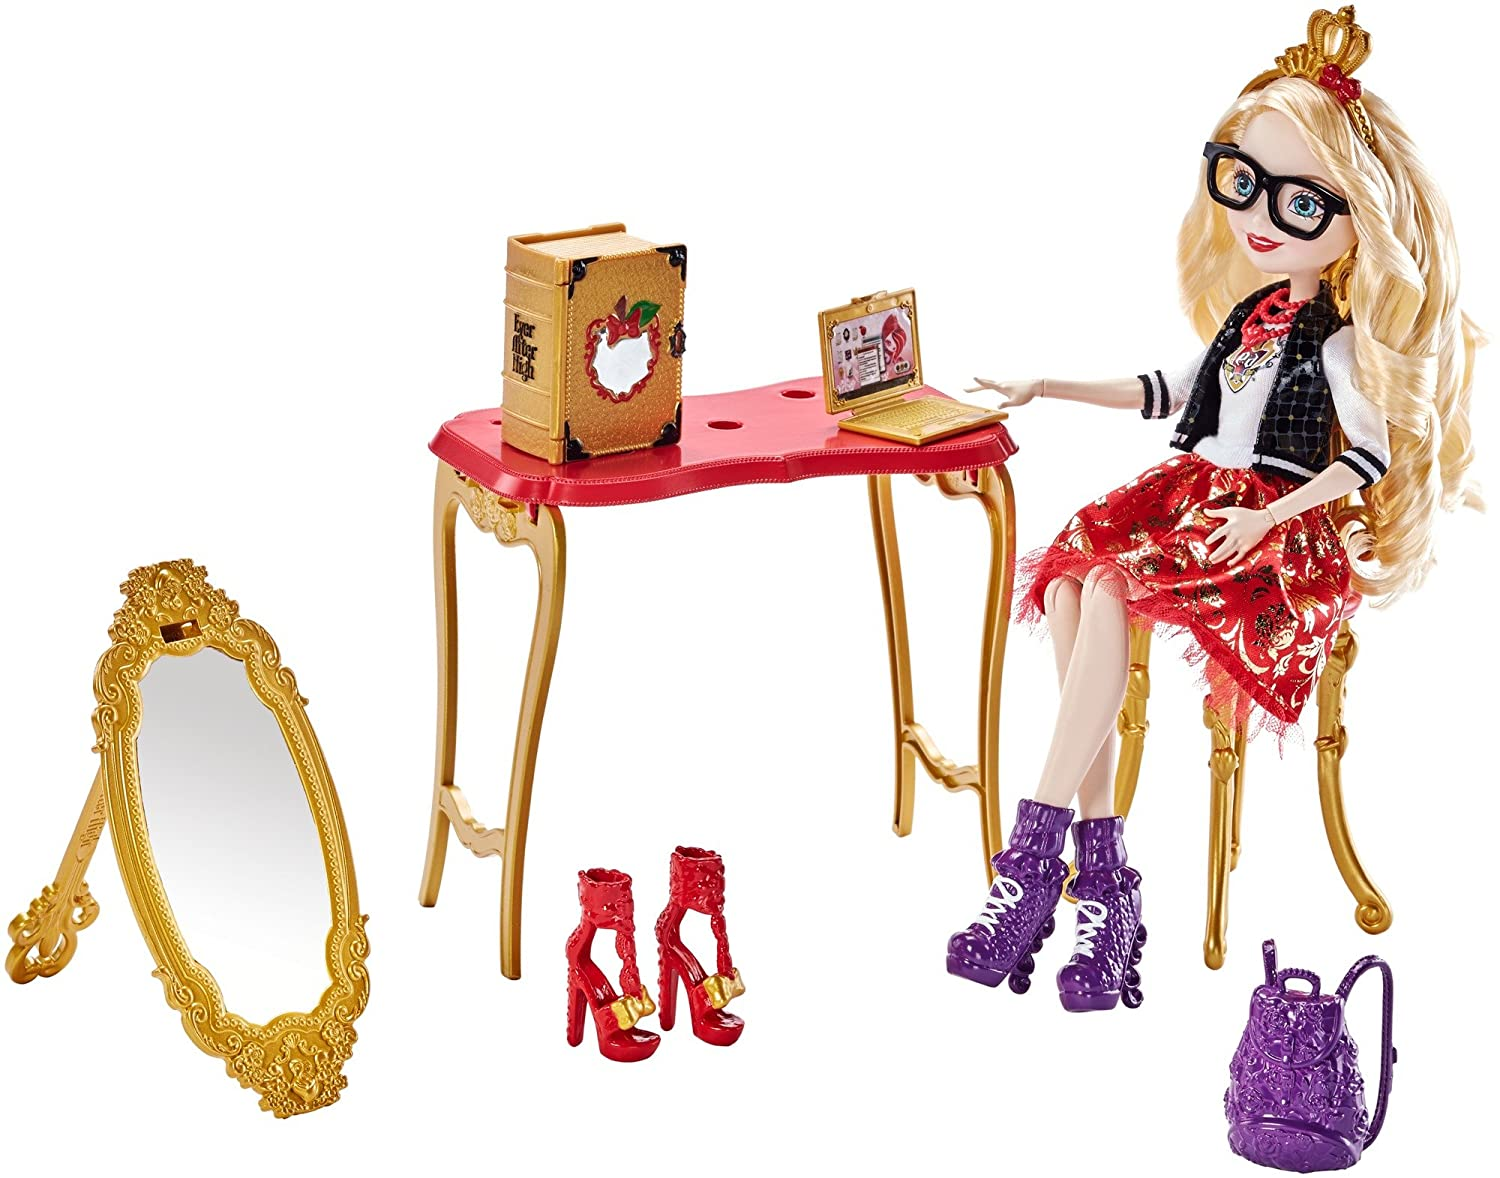 Swell Ever After High Apple White Room To Study Doll Machost Co Dining Chair Design Ideas Machostcouk